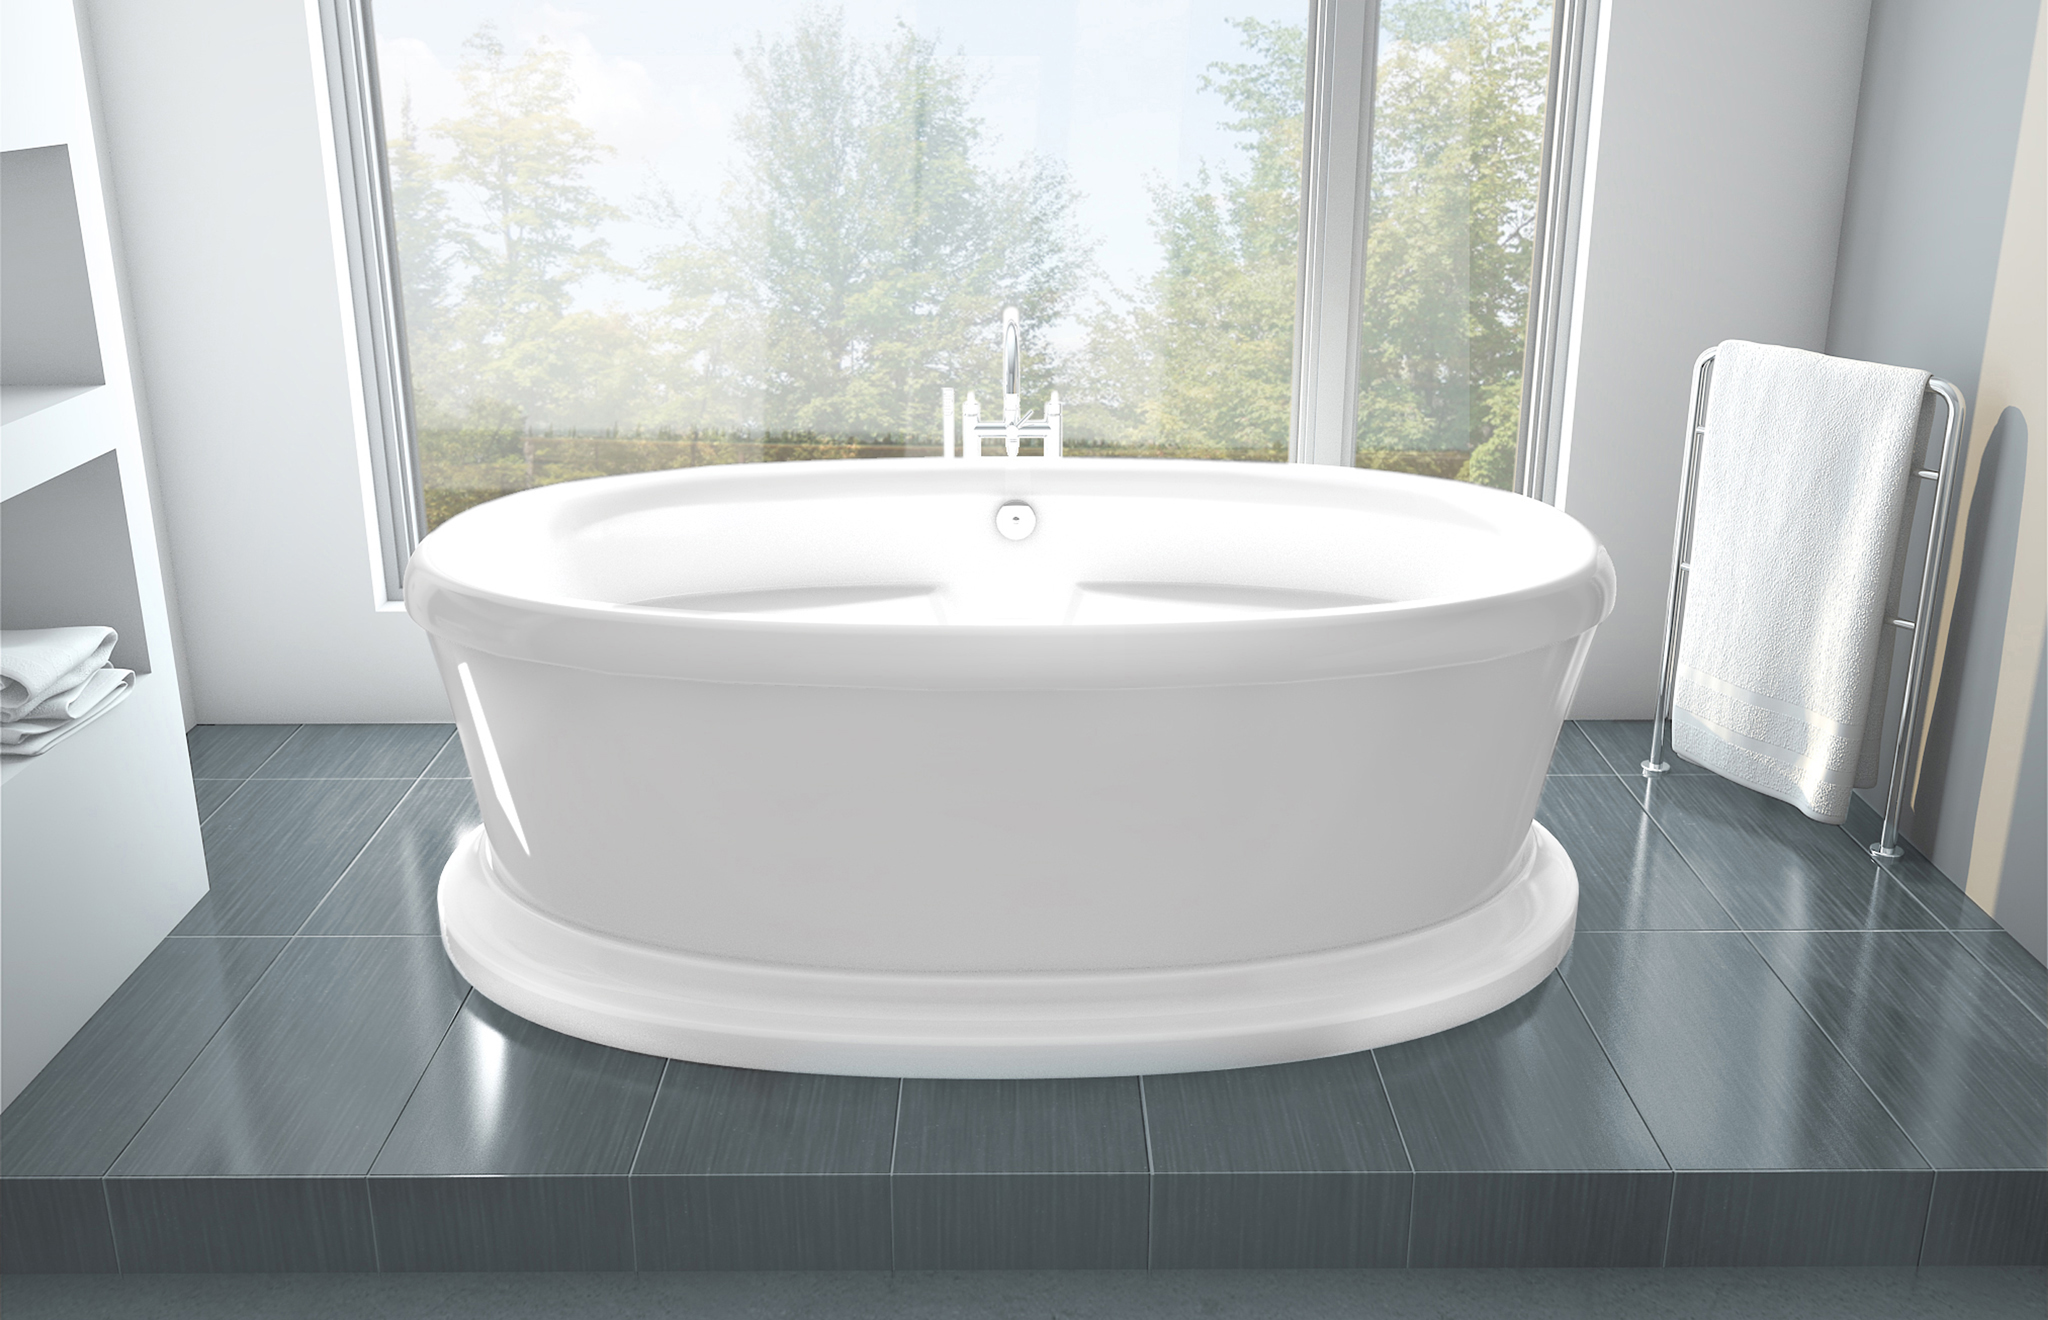 Freestanding Bathtubs With Air Jets | Sevenstonesinc.com